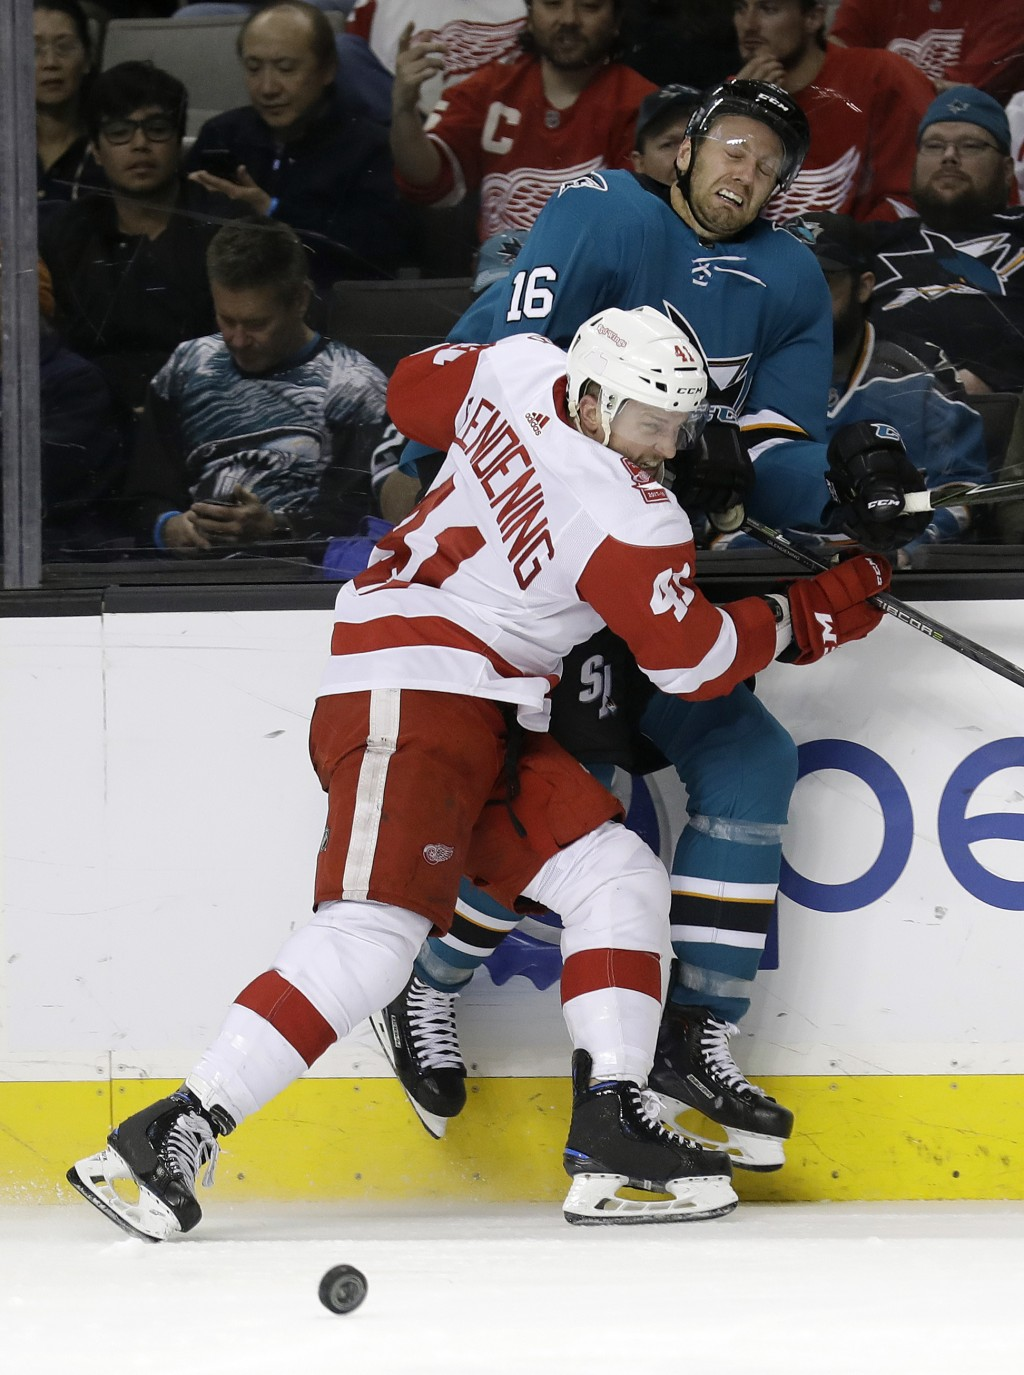 Detroit Red Wings' Luke Glendening (41) presses San Jose Sharks' Eric Fehr (16) against the boards during the second period of an NHL hockey game, Mon